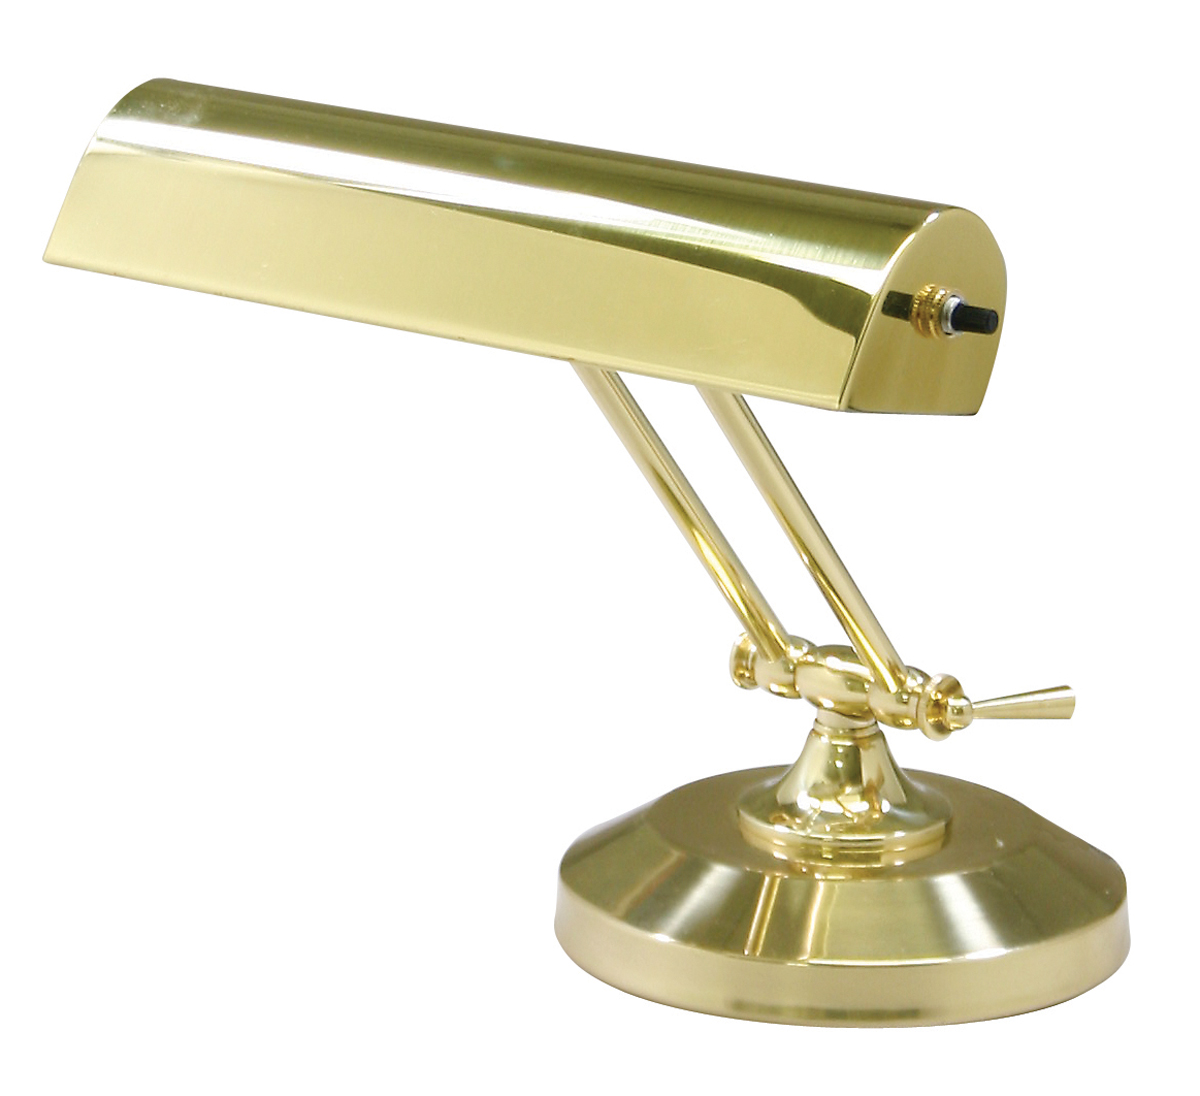 House of troy p10 150 10 inch piano desk lamp shown in for 10 inch table lamp